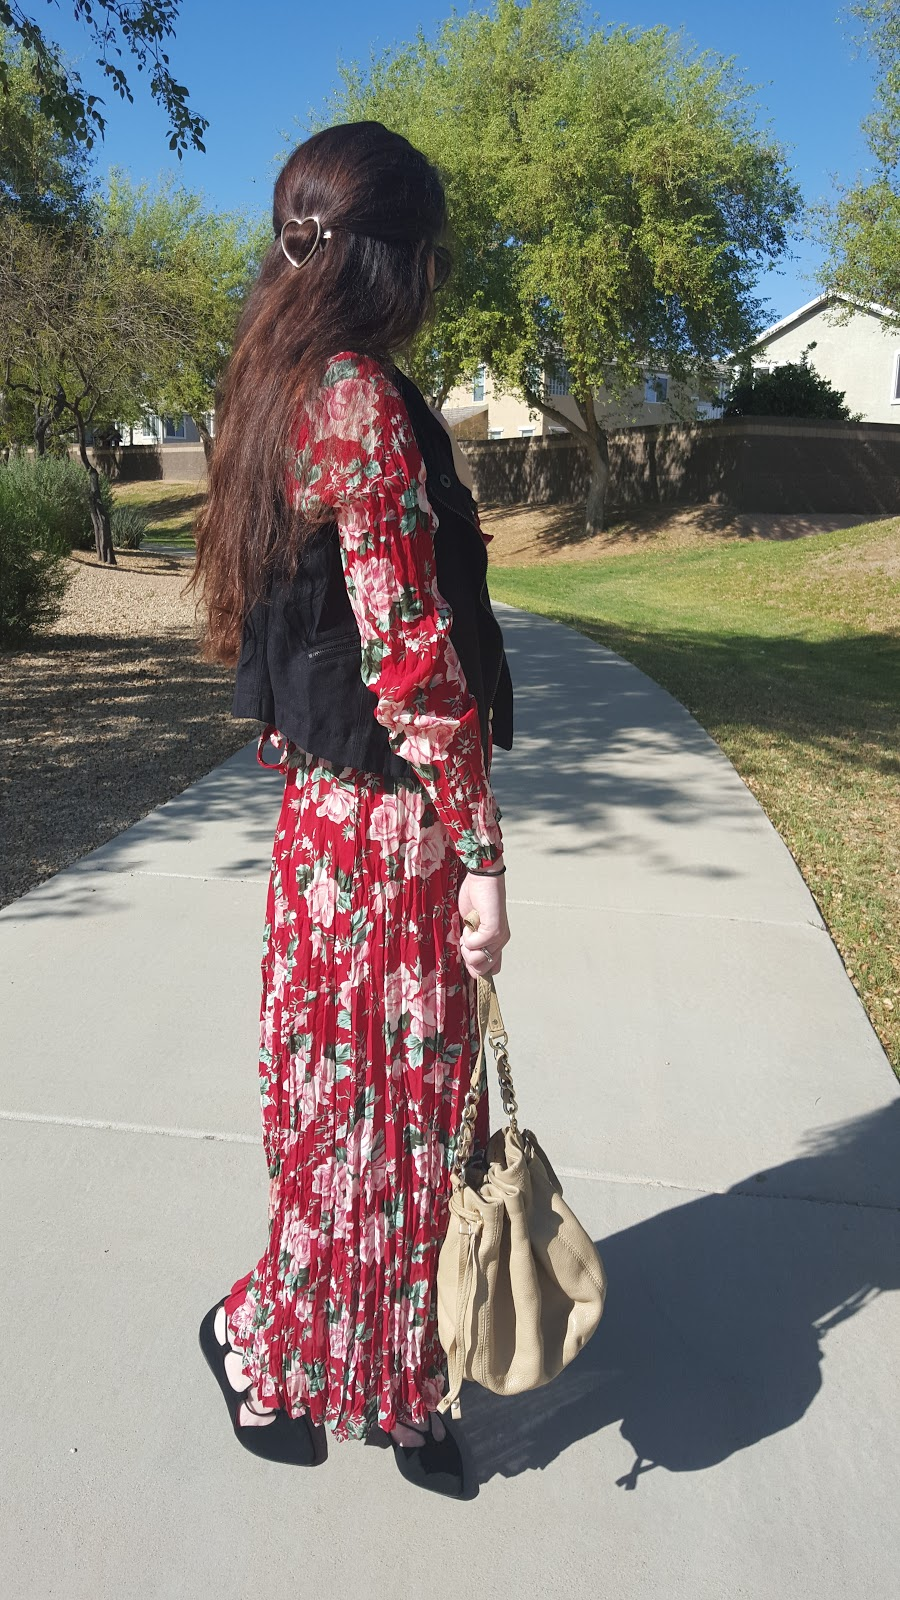 Spring fashion- floral maxi dress with suede